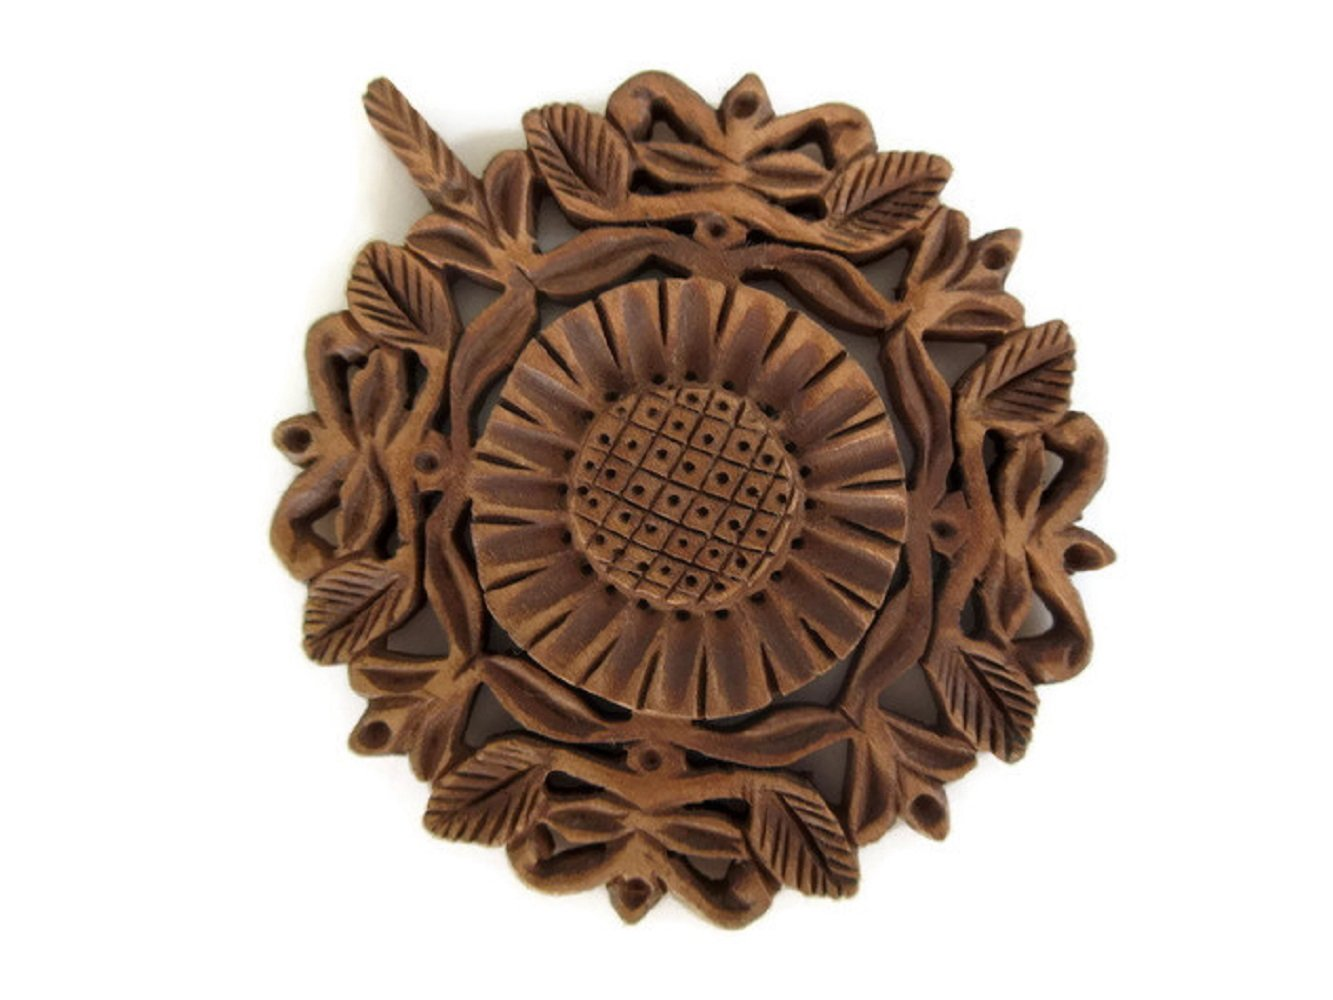 Hand Carved Wooden Flower Pendant, Handmade Jharokha Pendant, Wood Art And Craft Framing Supplies Jewelry, GDS1046/6 (2 Pieces)